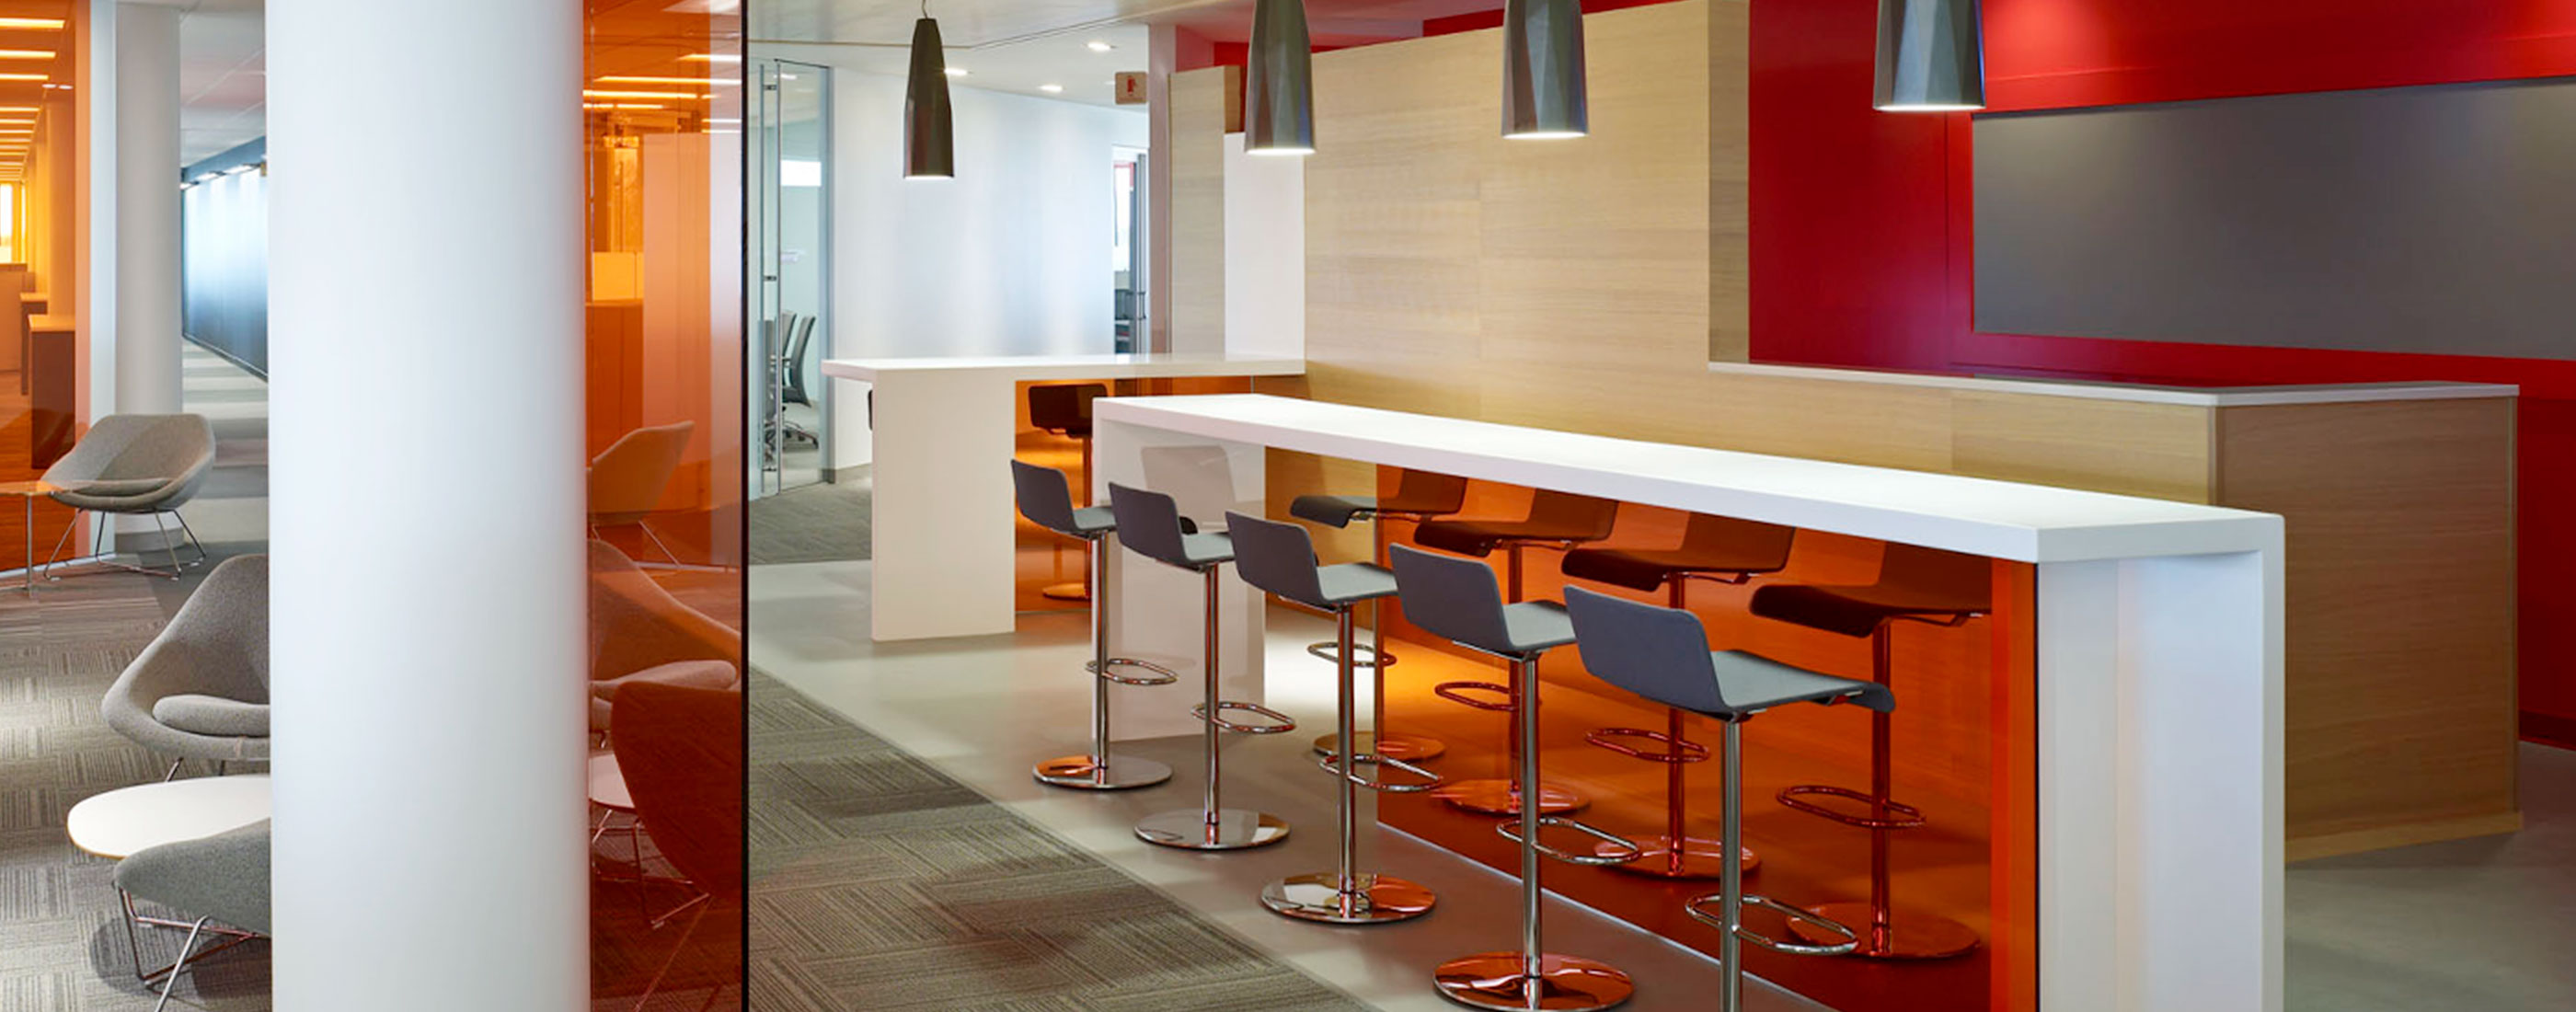 One of many informal meeting areas at the Cardinal Health Corporate Headquarters, designed by OHM Advisors.